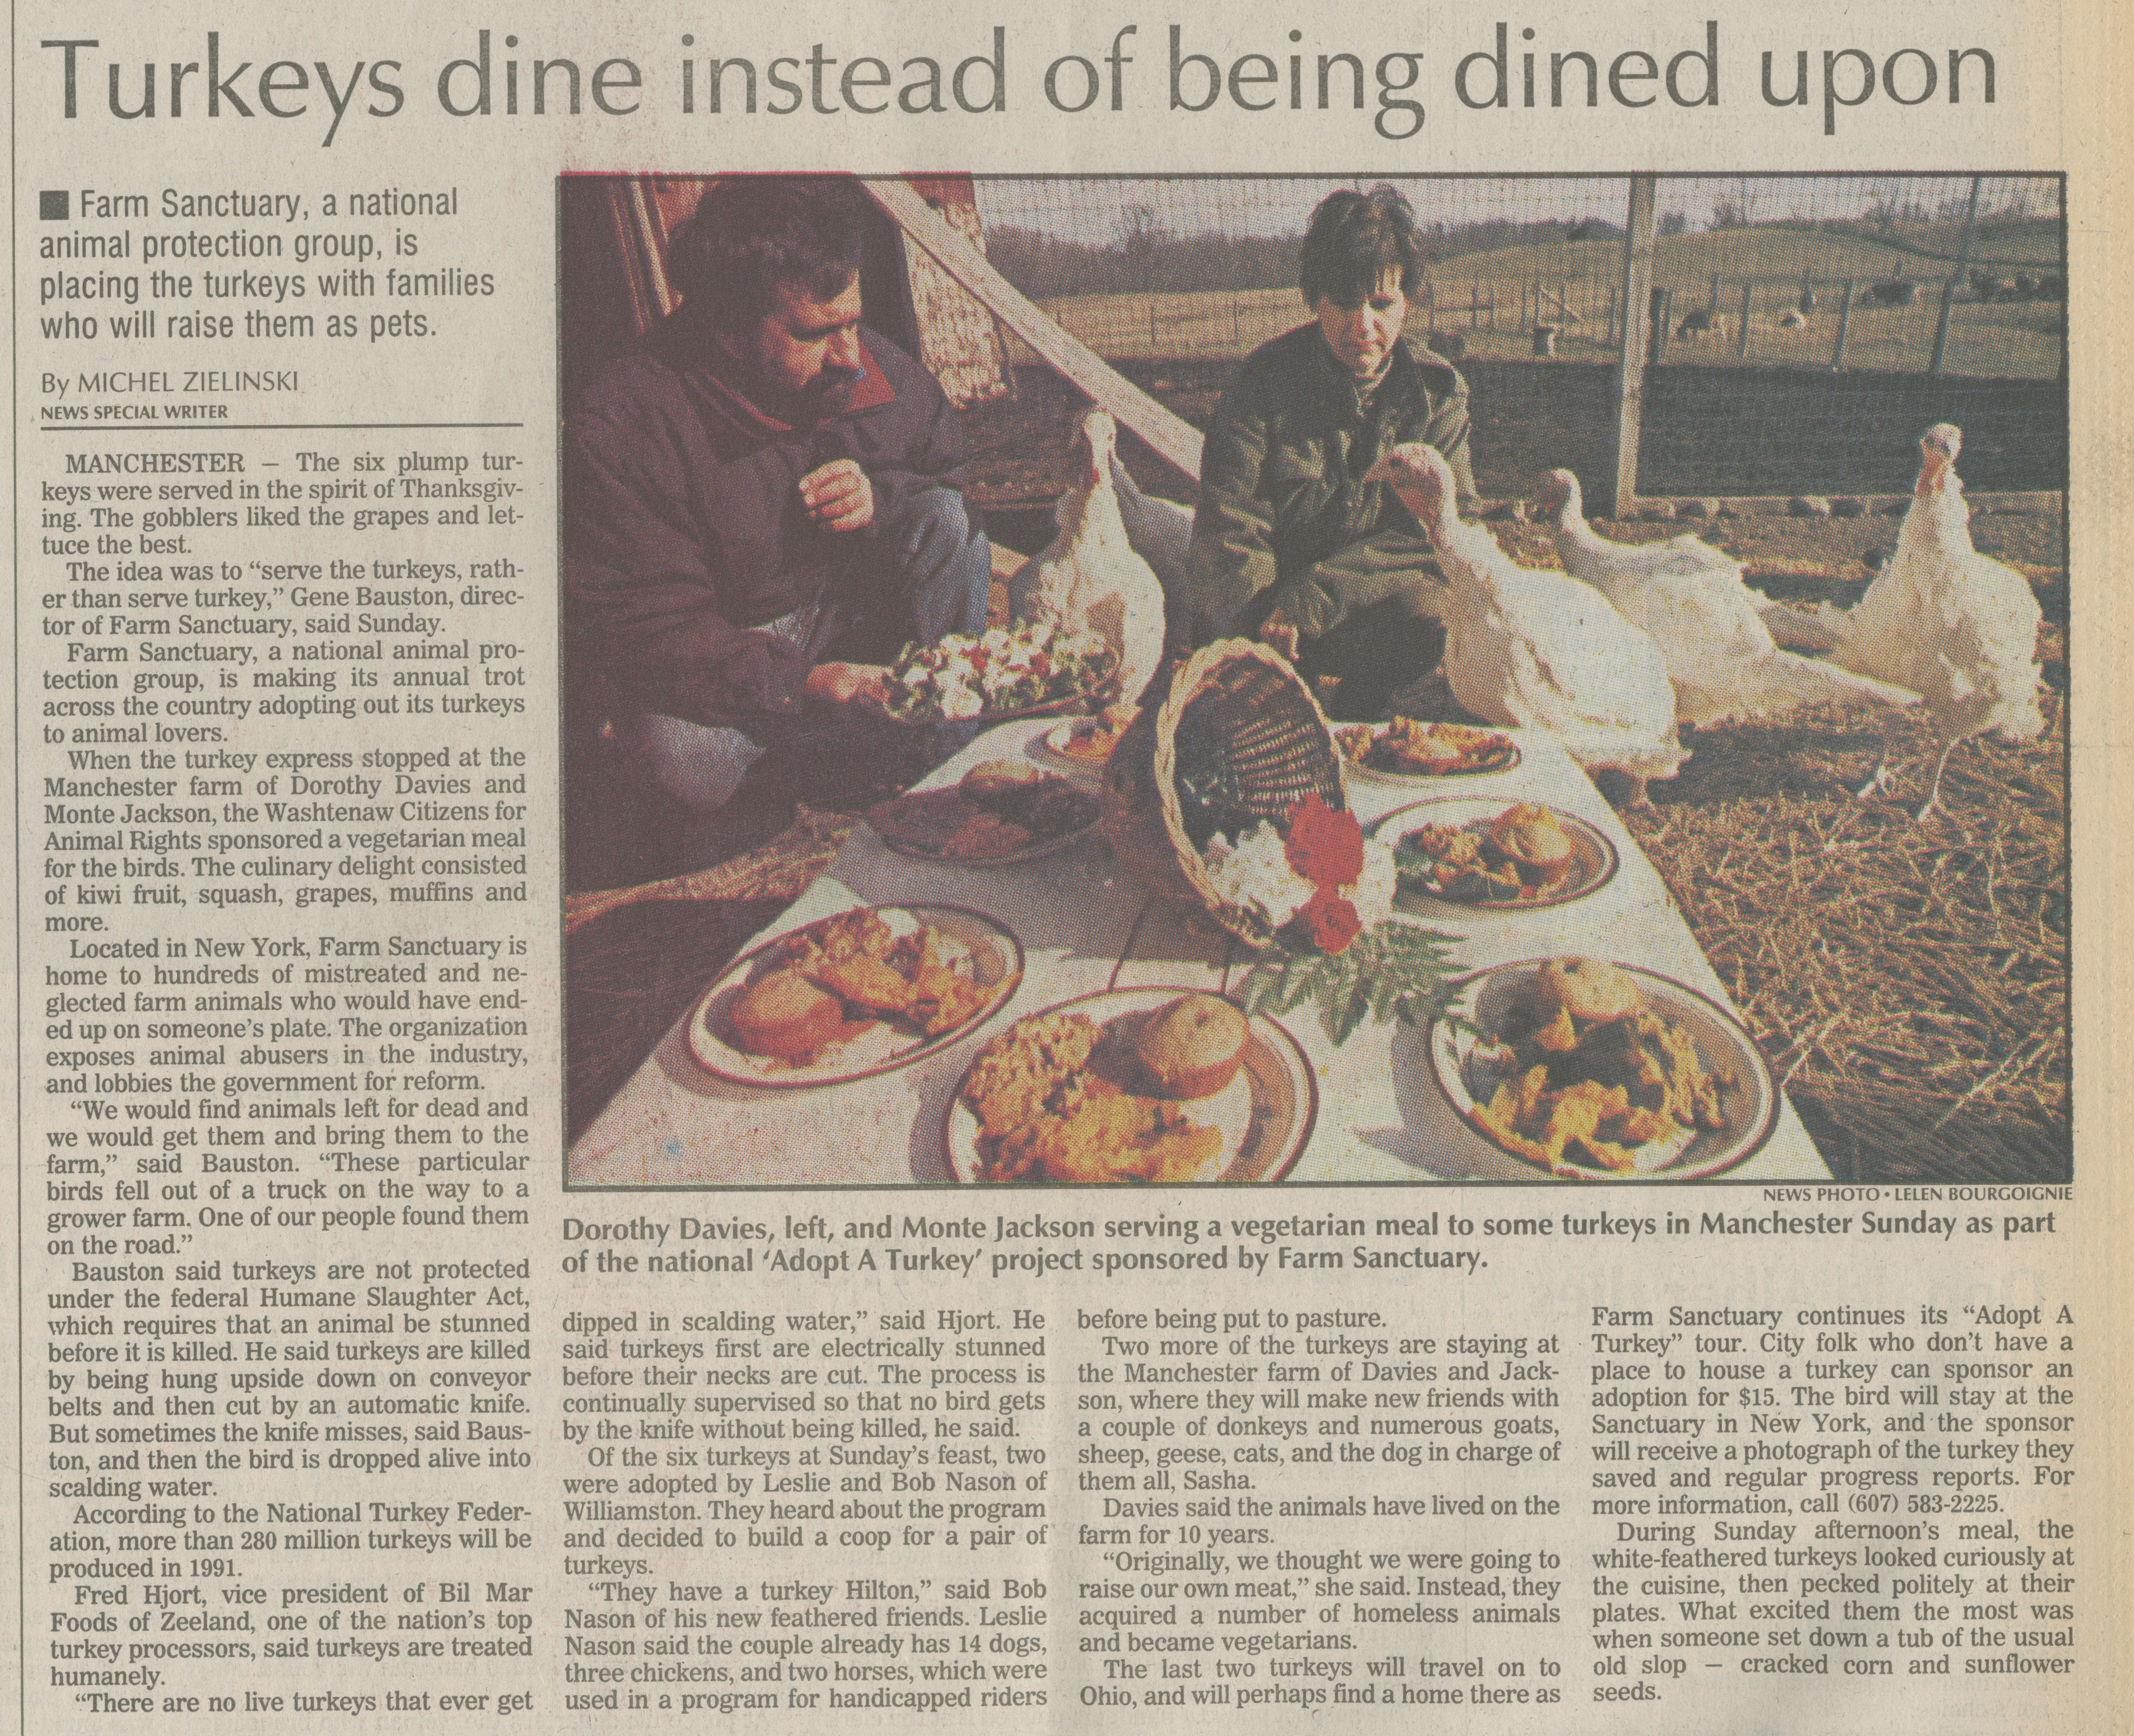 Turkeys dine instead of being dined upon image